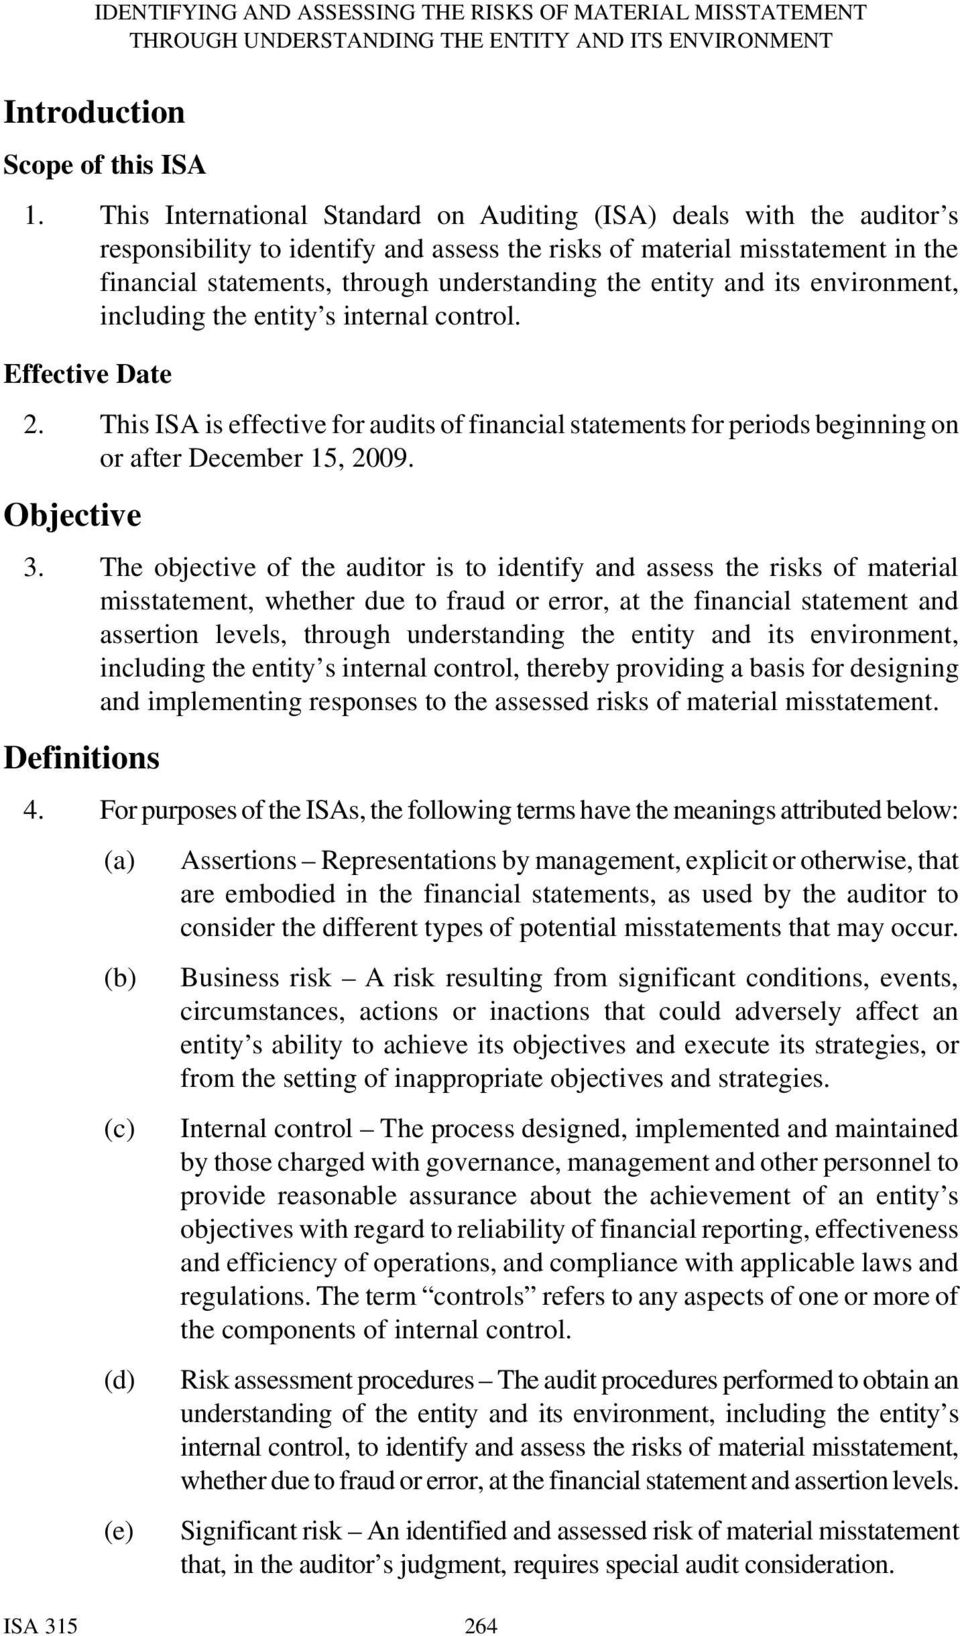 entity and its environment, including the entity s internal control. Effective Date 2. This ISA is effective for audits of financial statements for periods beginning on or after December 15, 2009.